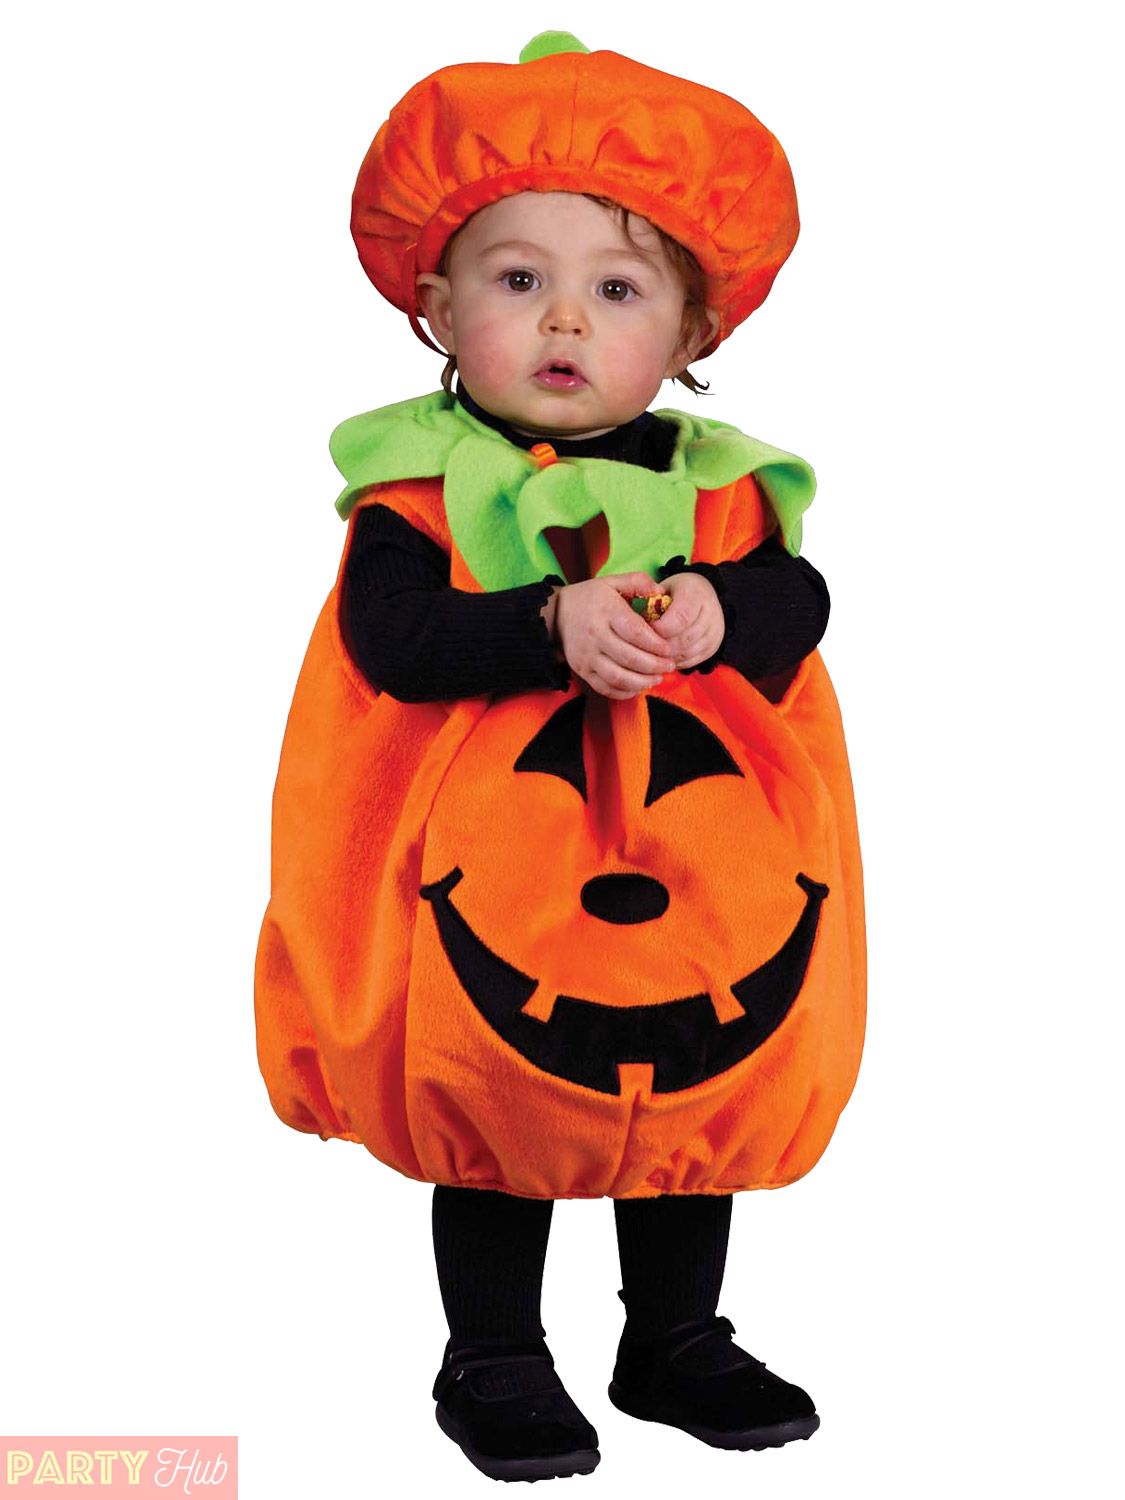 a234123b629 Details about Baby Toddler Halloween Costume Childrens Kids Ghost Pumpkin  Fancy Dress Outfit